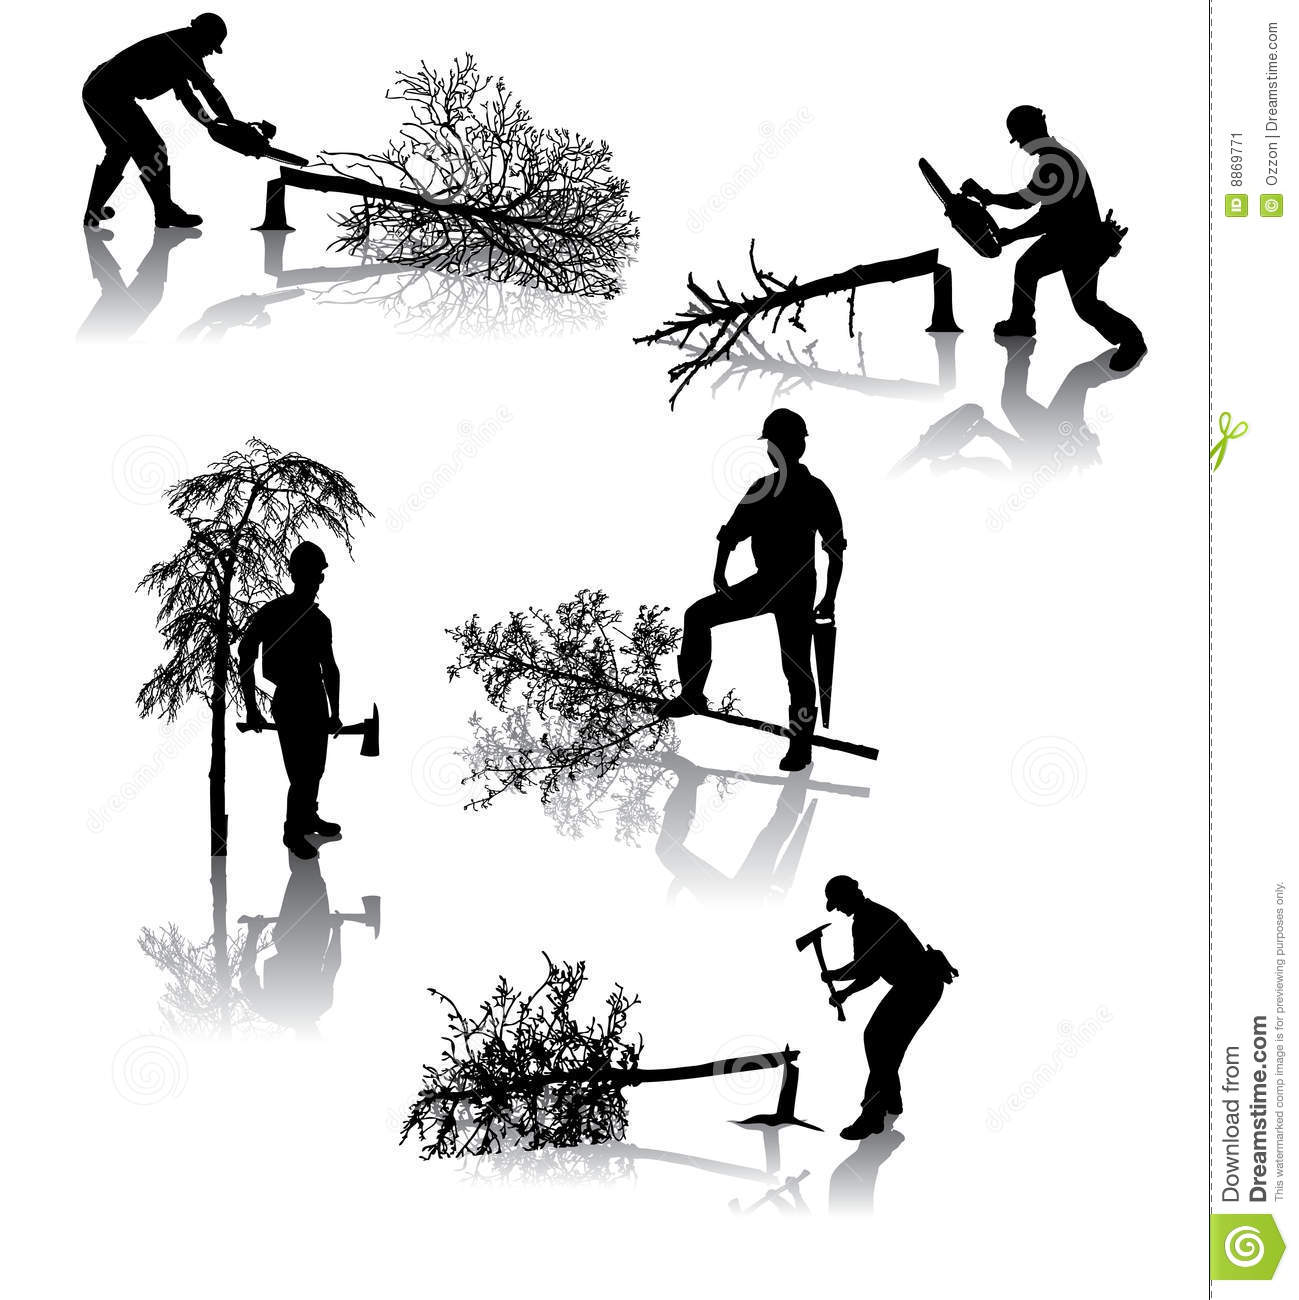 Forest workers clipart #11